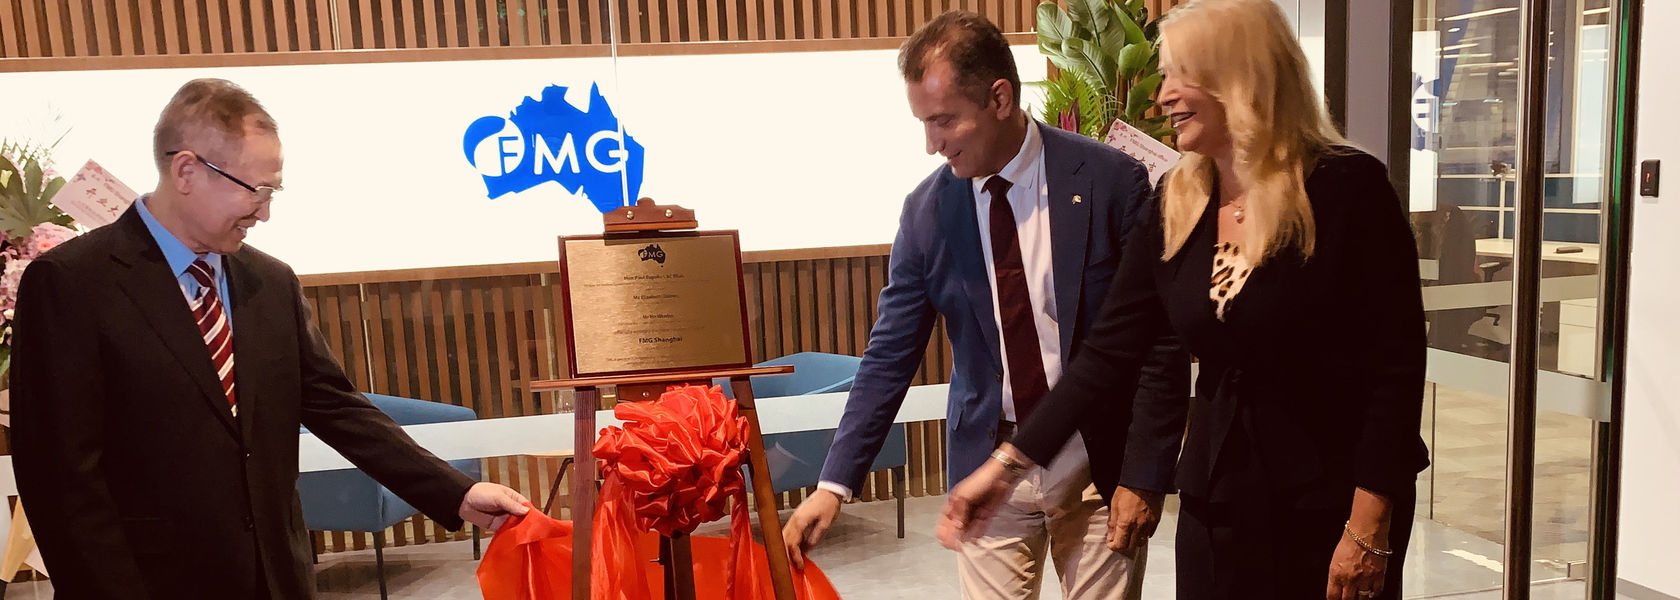 New FMG Shanghai office strengthens China link